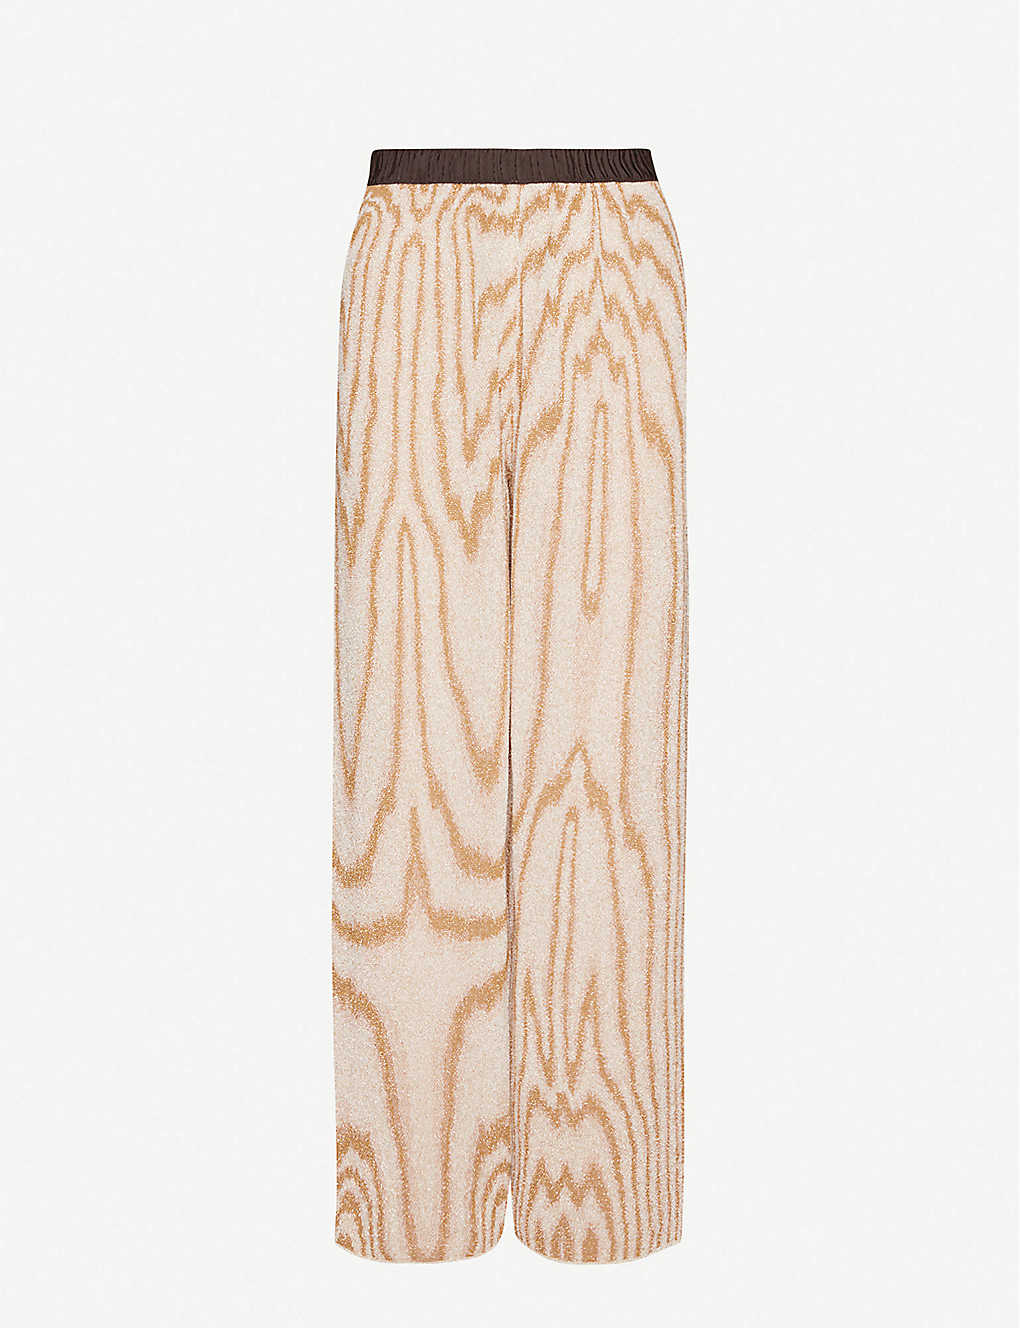 DRIES VAN NOTEN: Graphic-print straight high-rise metallic-knit trousers